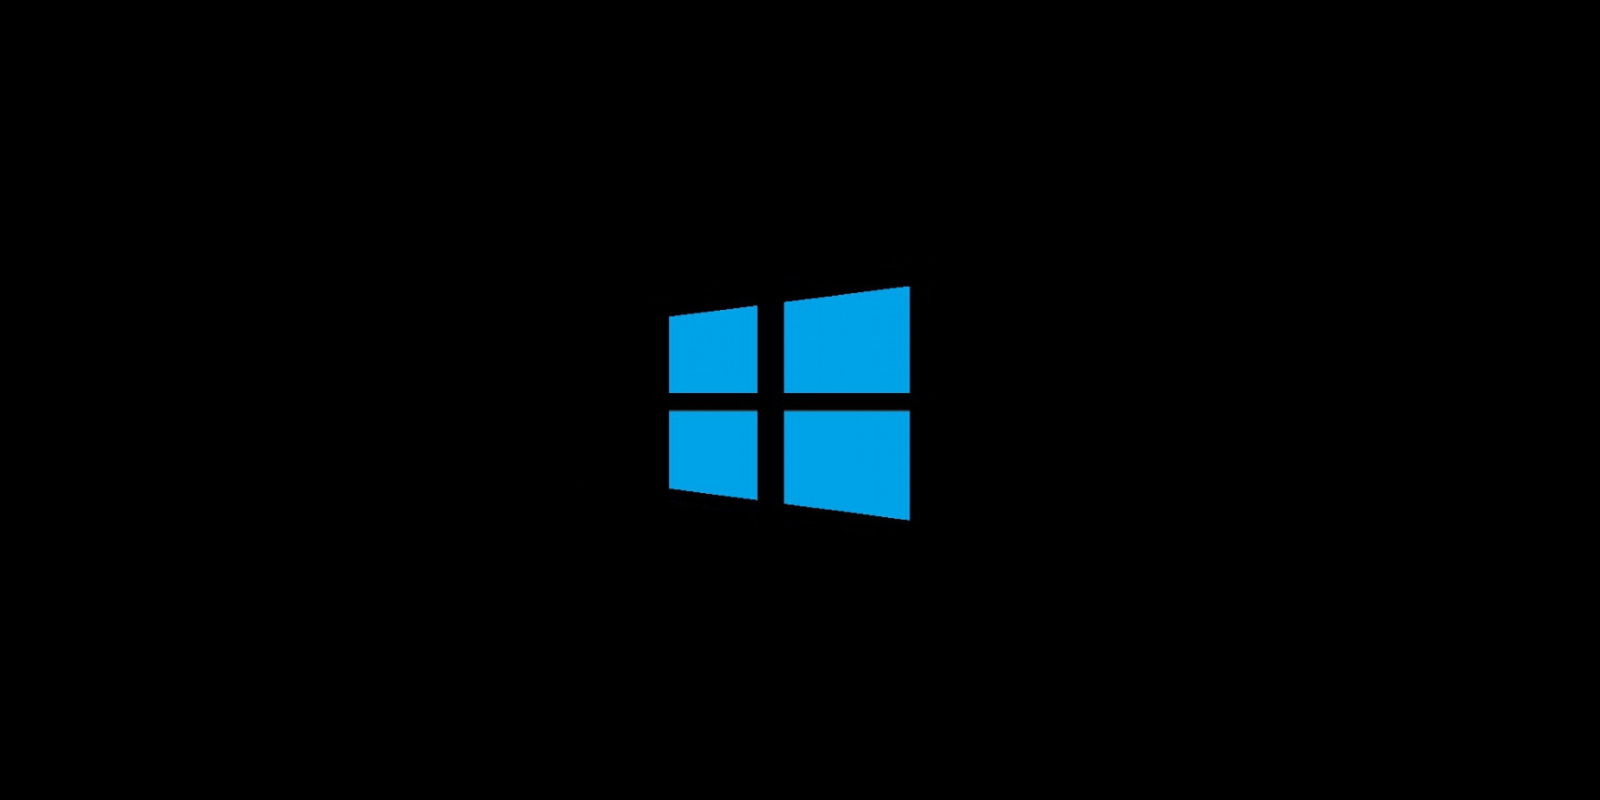 Microsoft releases patching guidance for Kerberos security bug